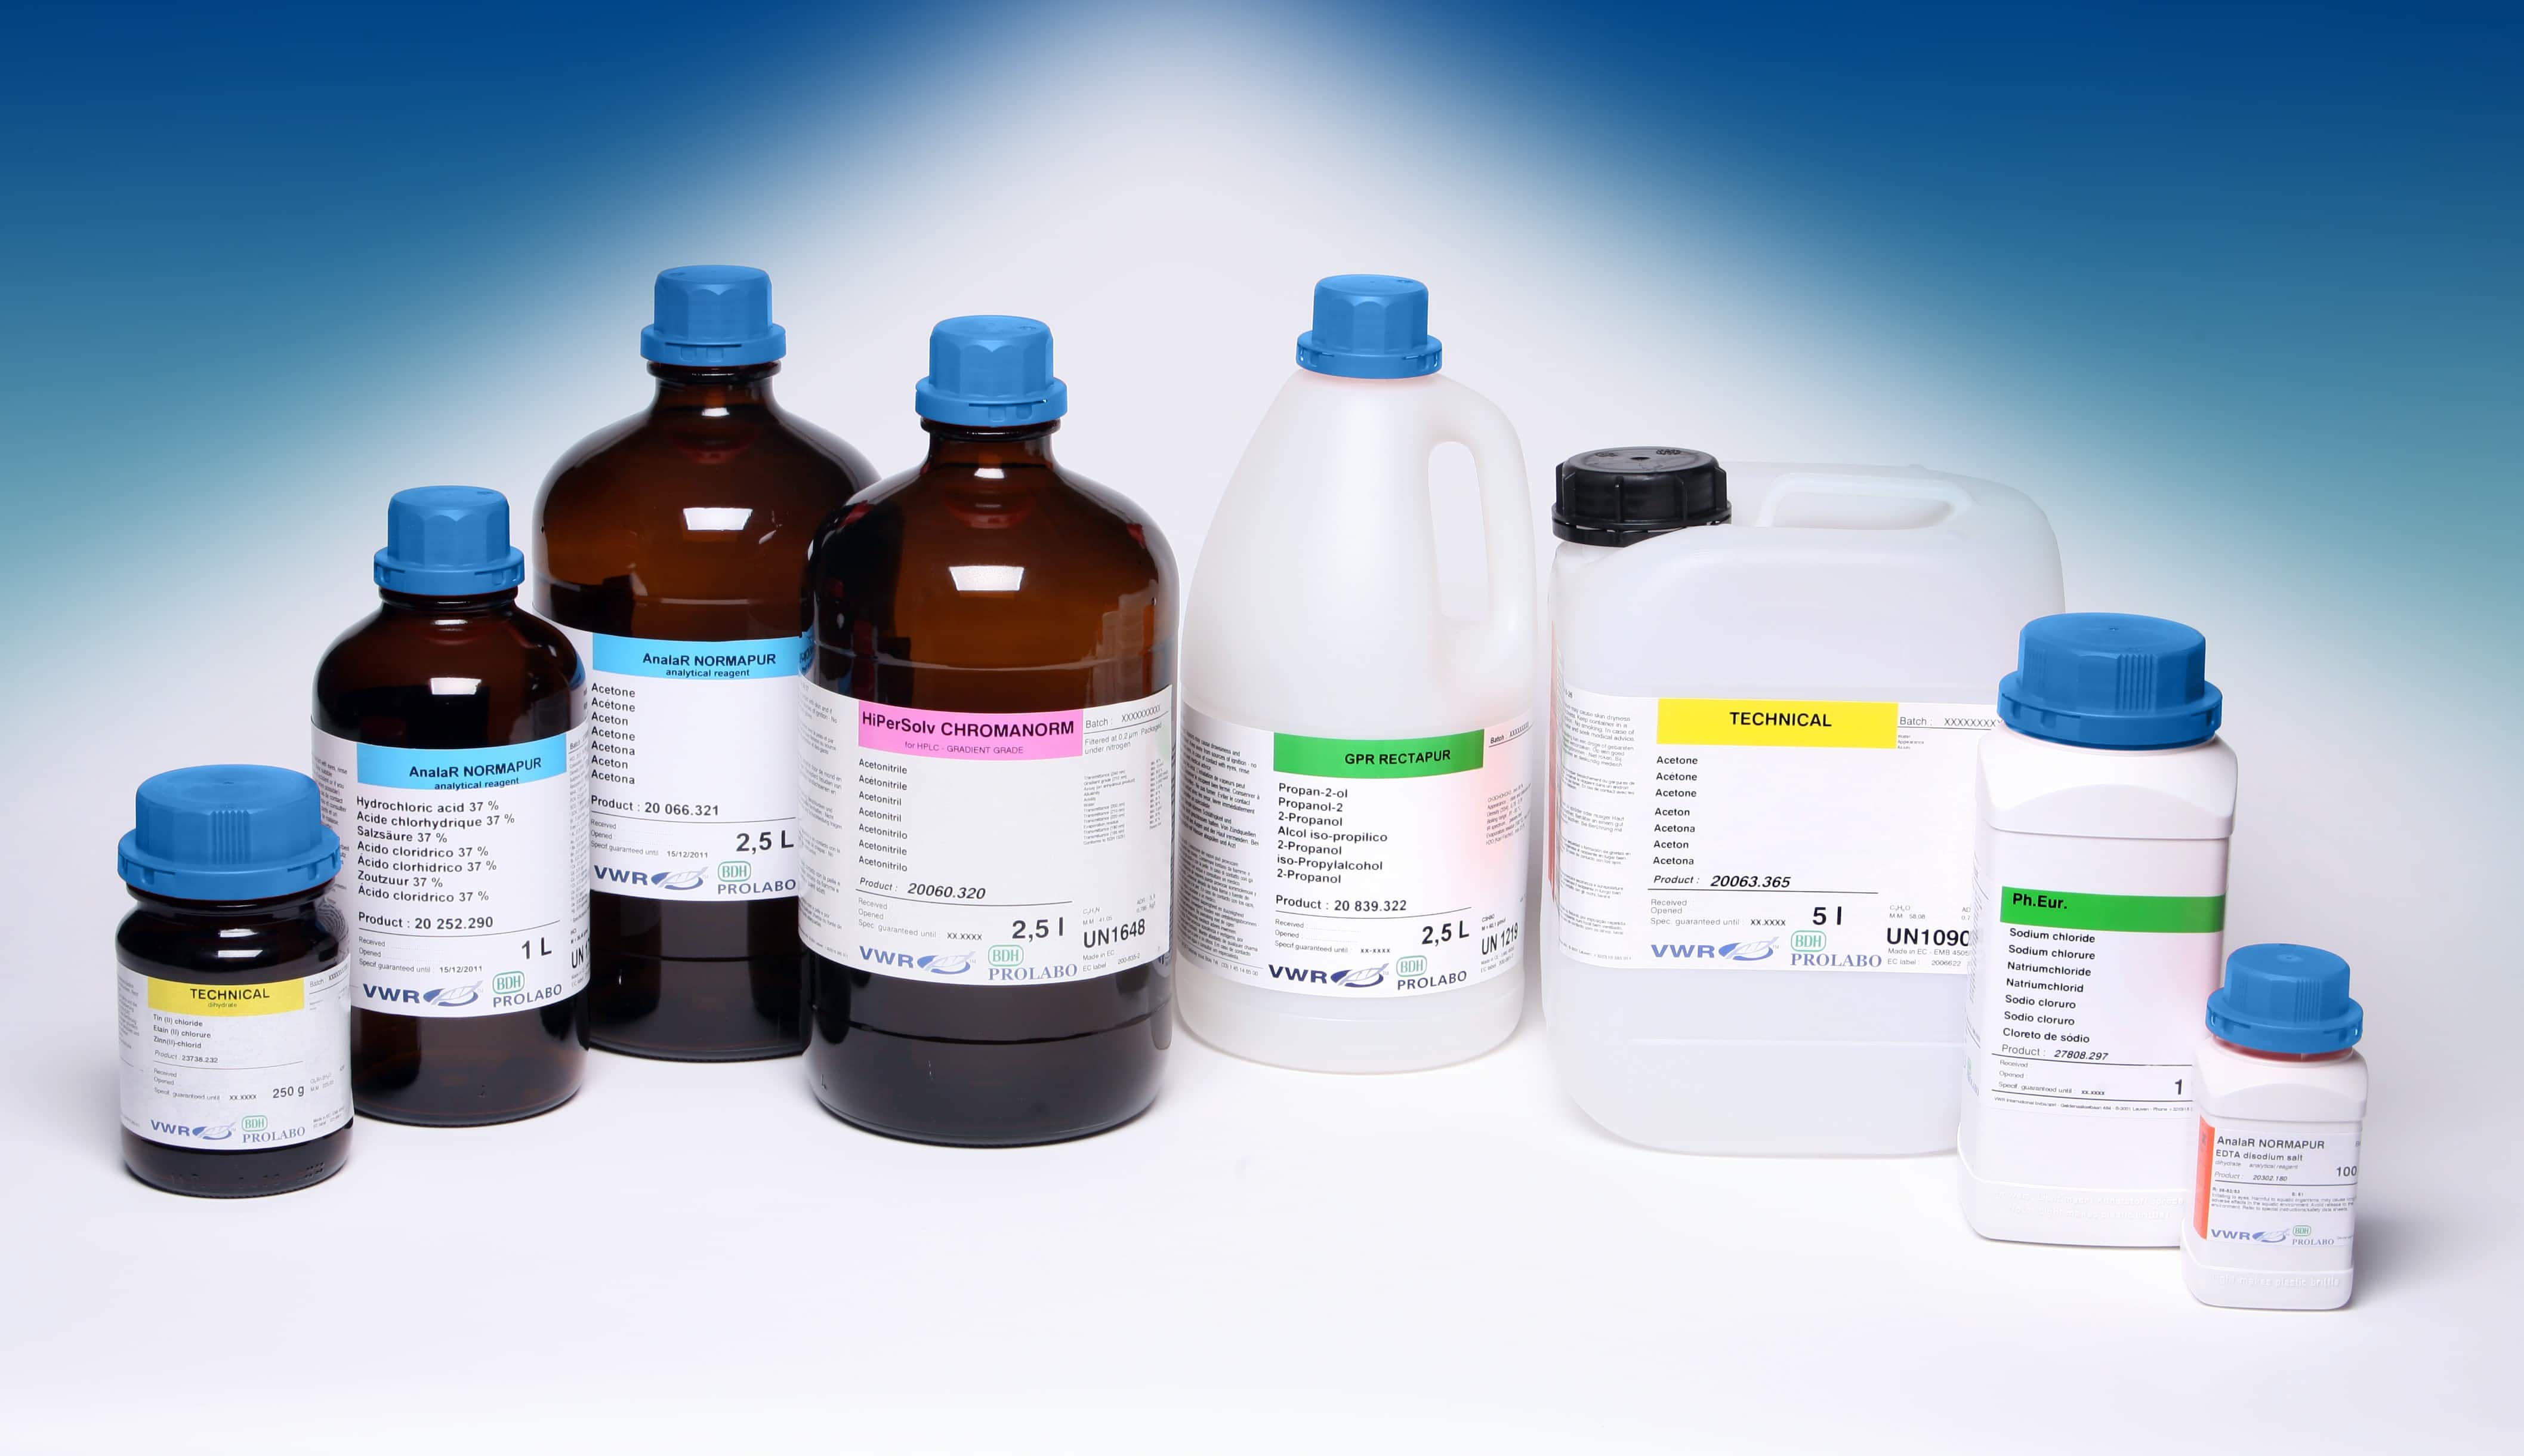 BDH PROLABO: THE CHEMICAL BRAND FROM VWR - Analytical Reporter